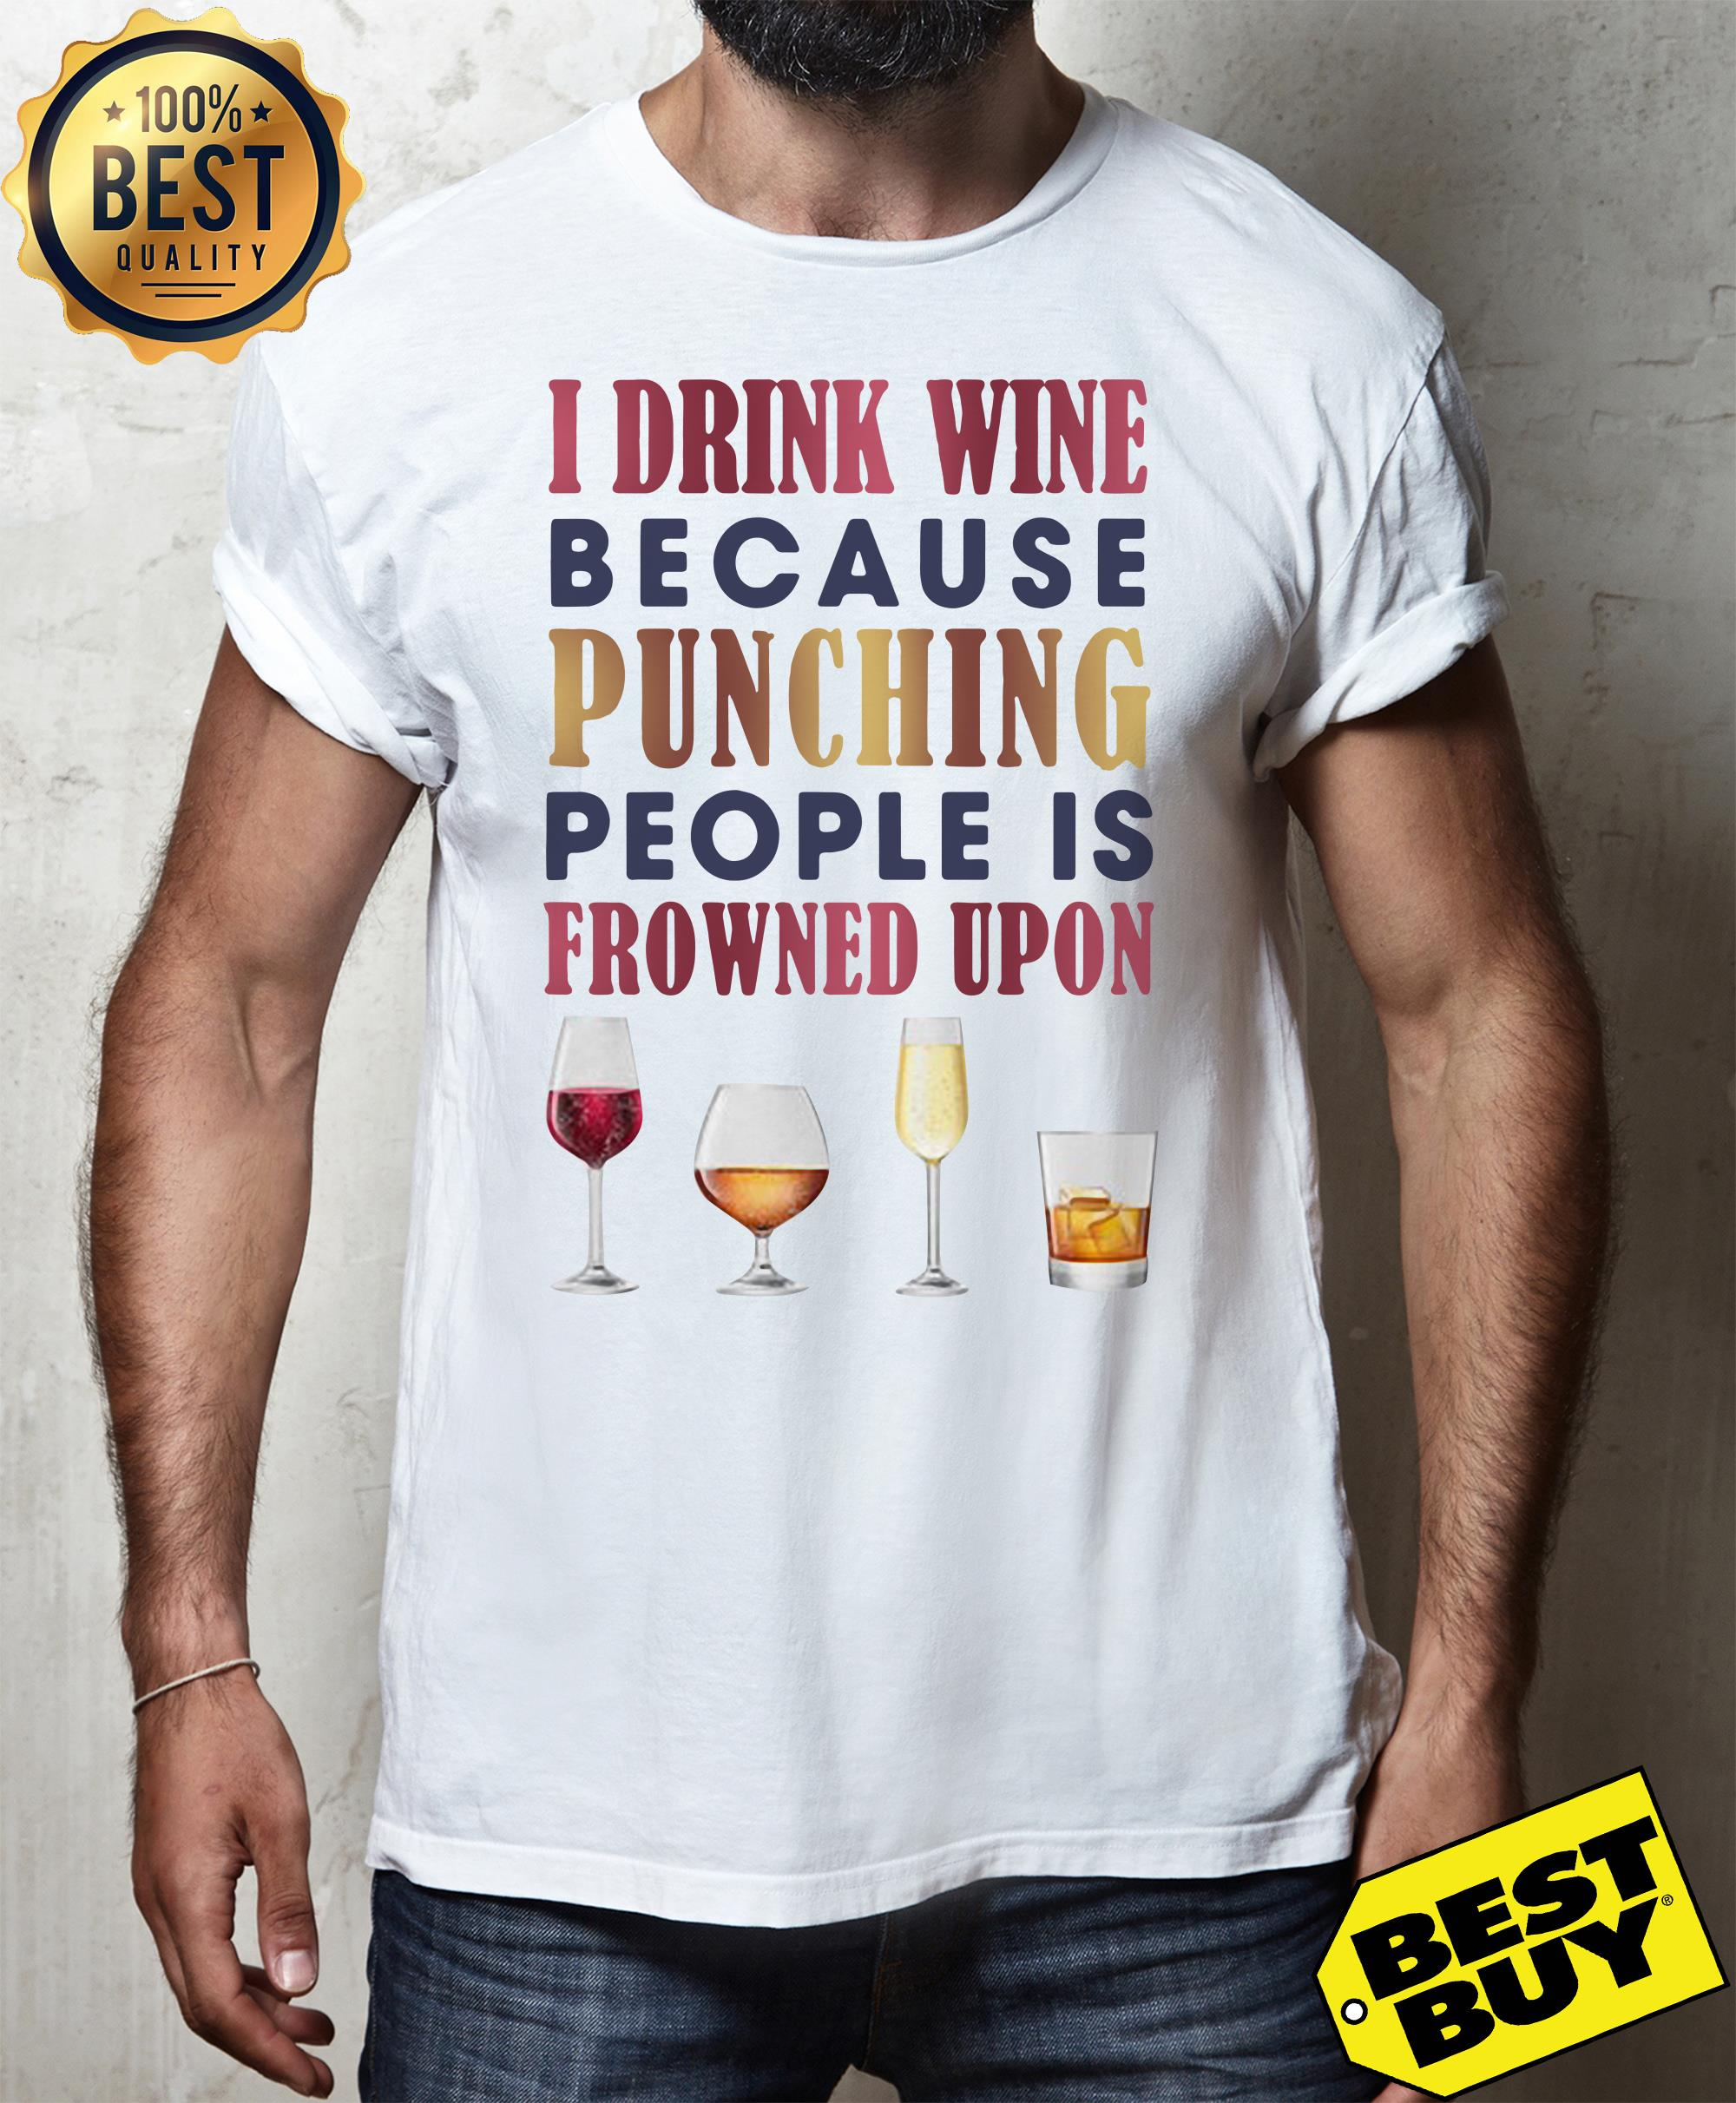 I drink wine because punching people is frowned upon shirt